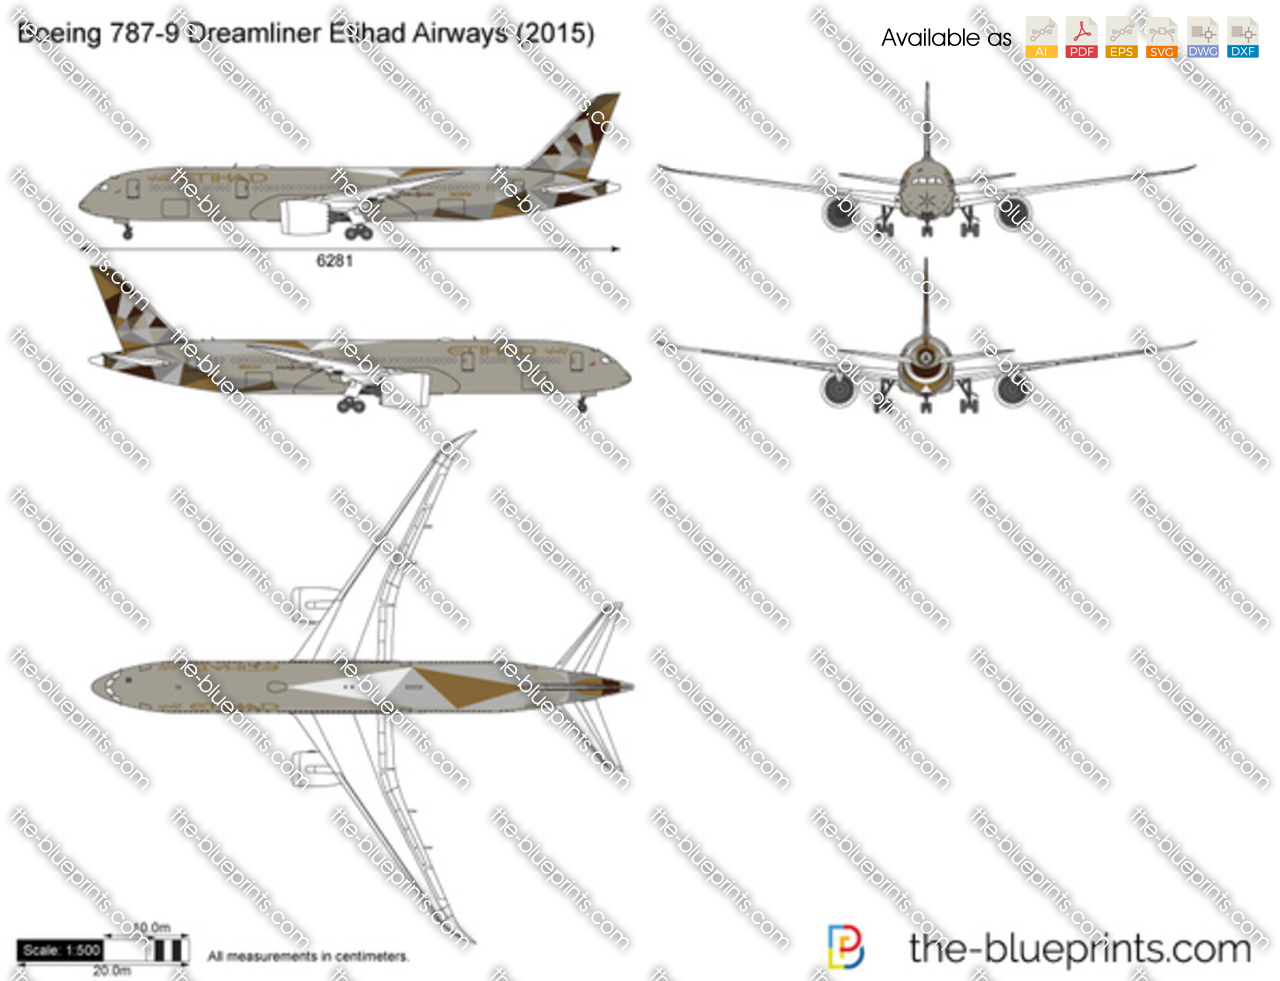 Boeing 787-9 Dreamliner Etihad Airways 2016